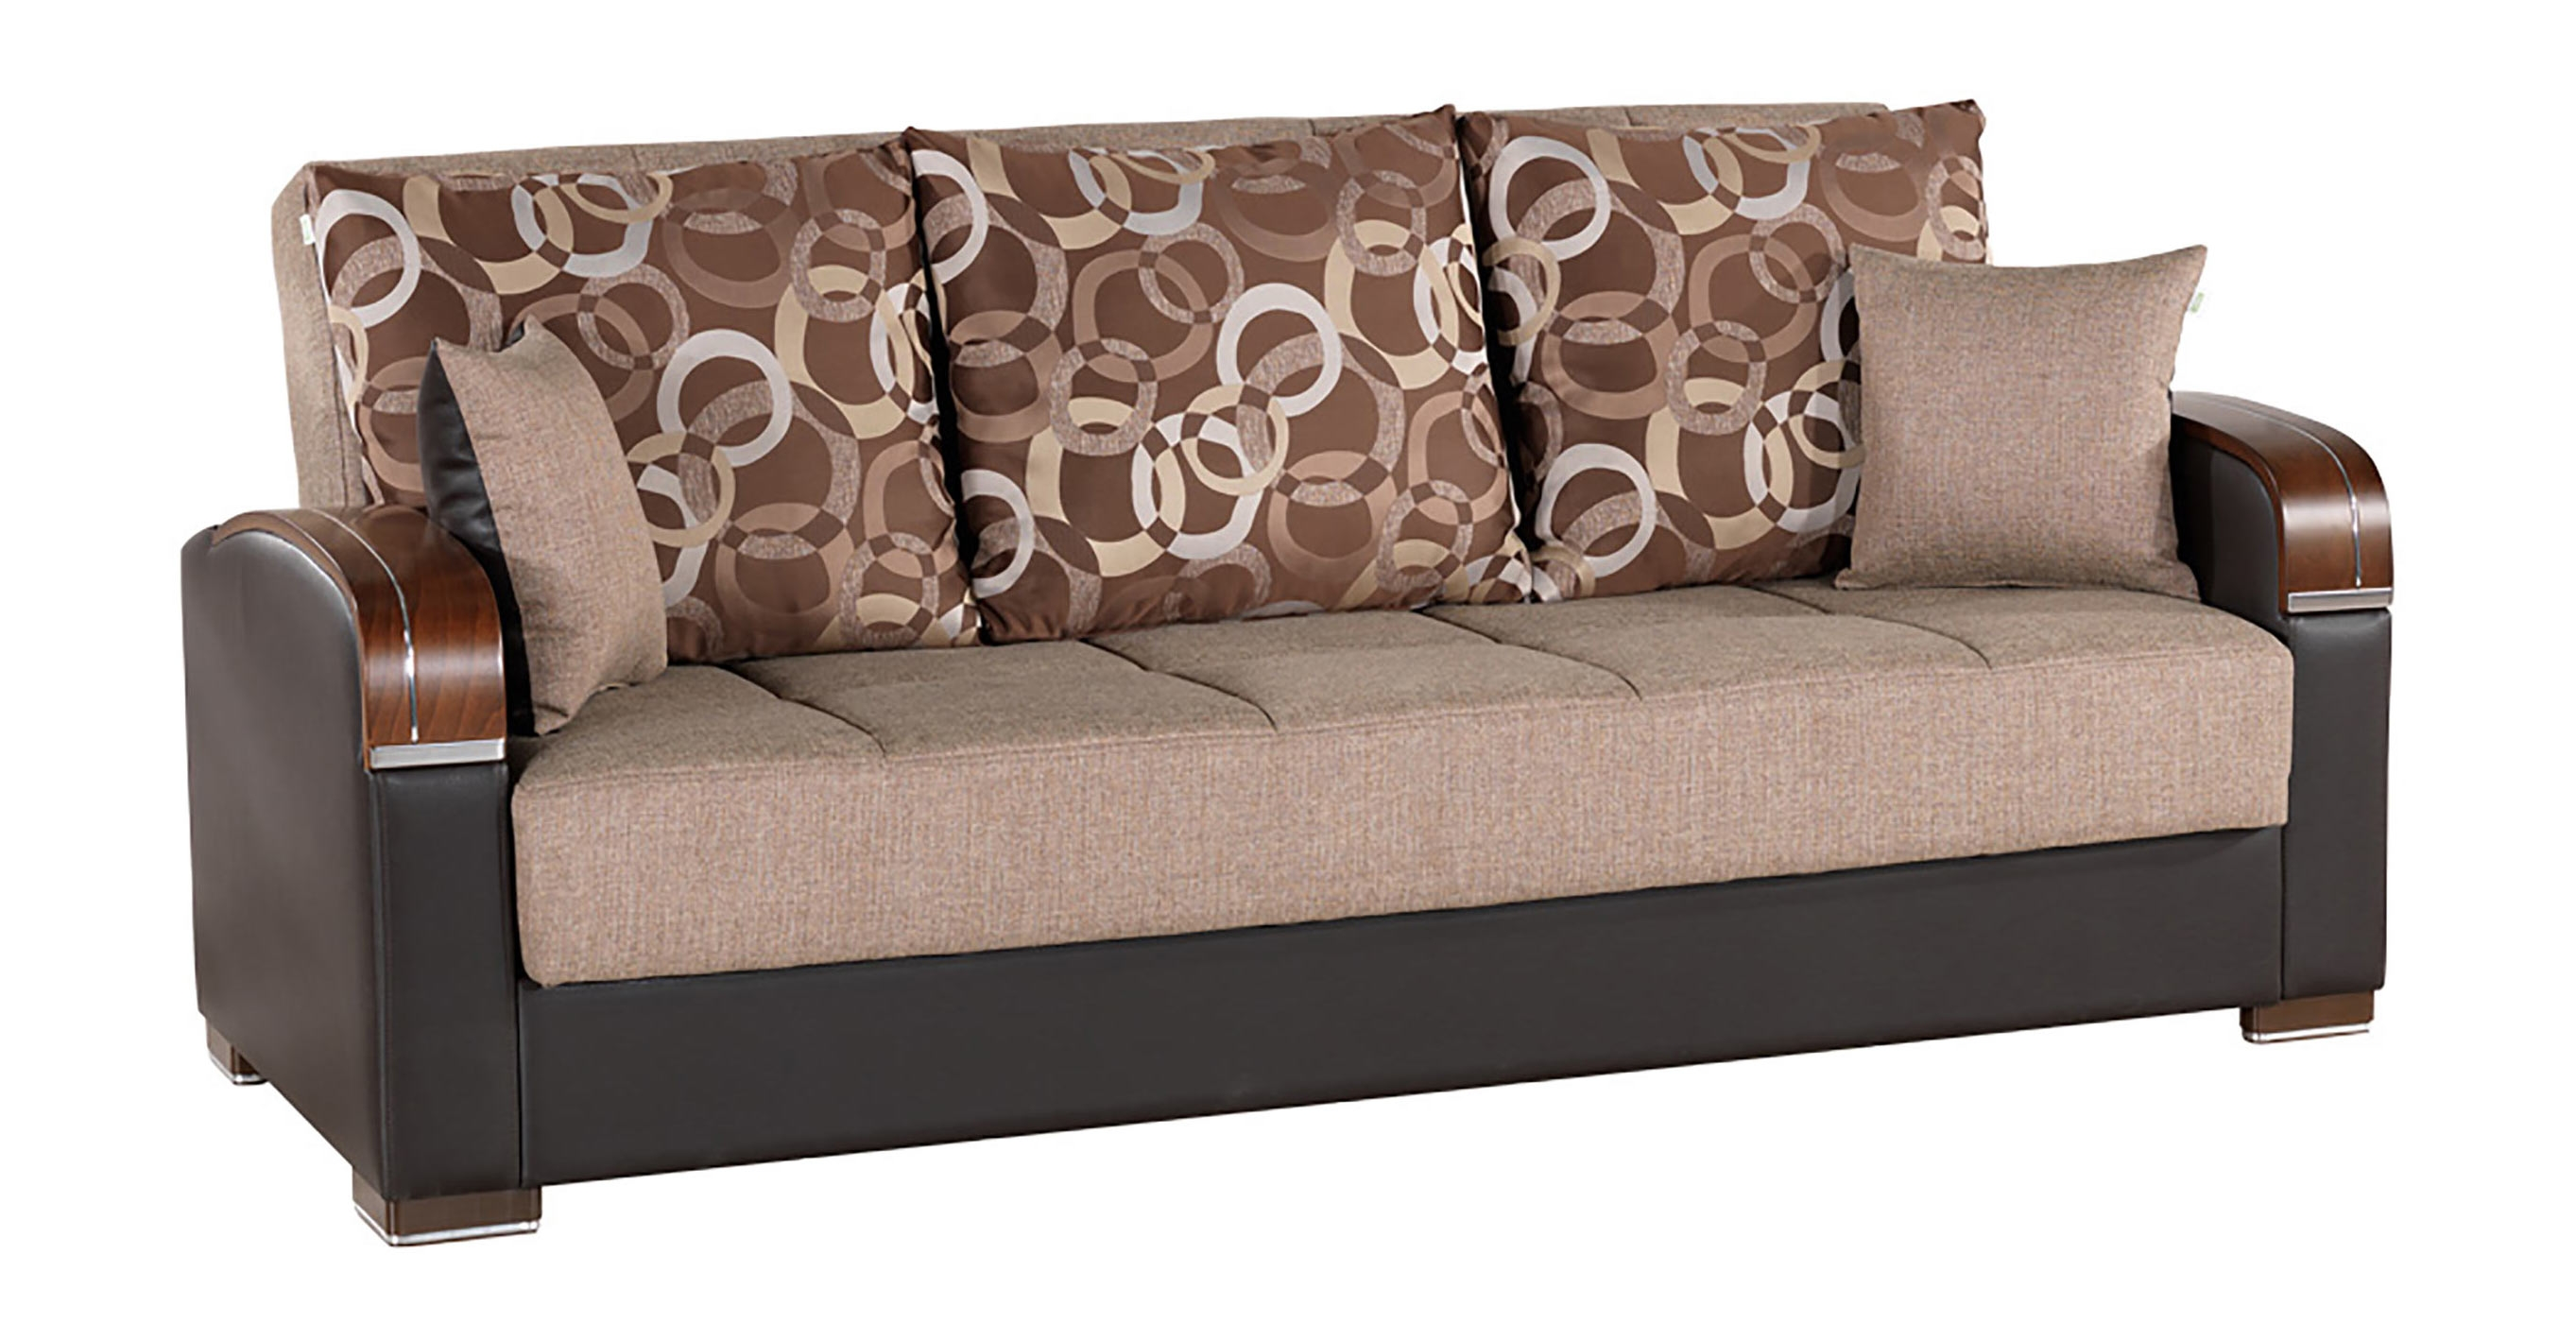 Mobimax Brown Convertible Sofa Bed Casamode Throughout Convertible Sofa Bed (#8 of 15)